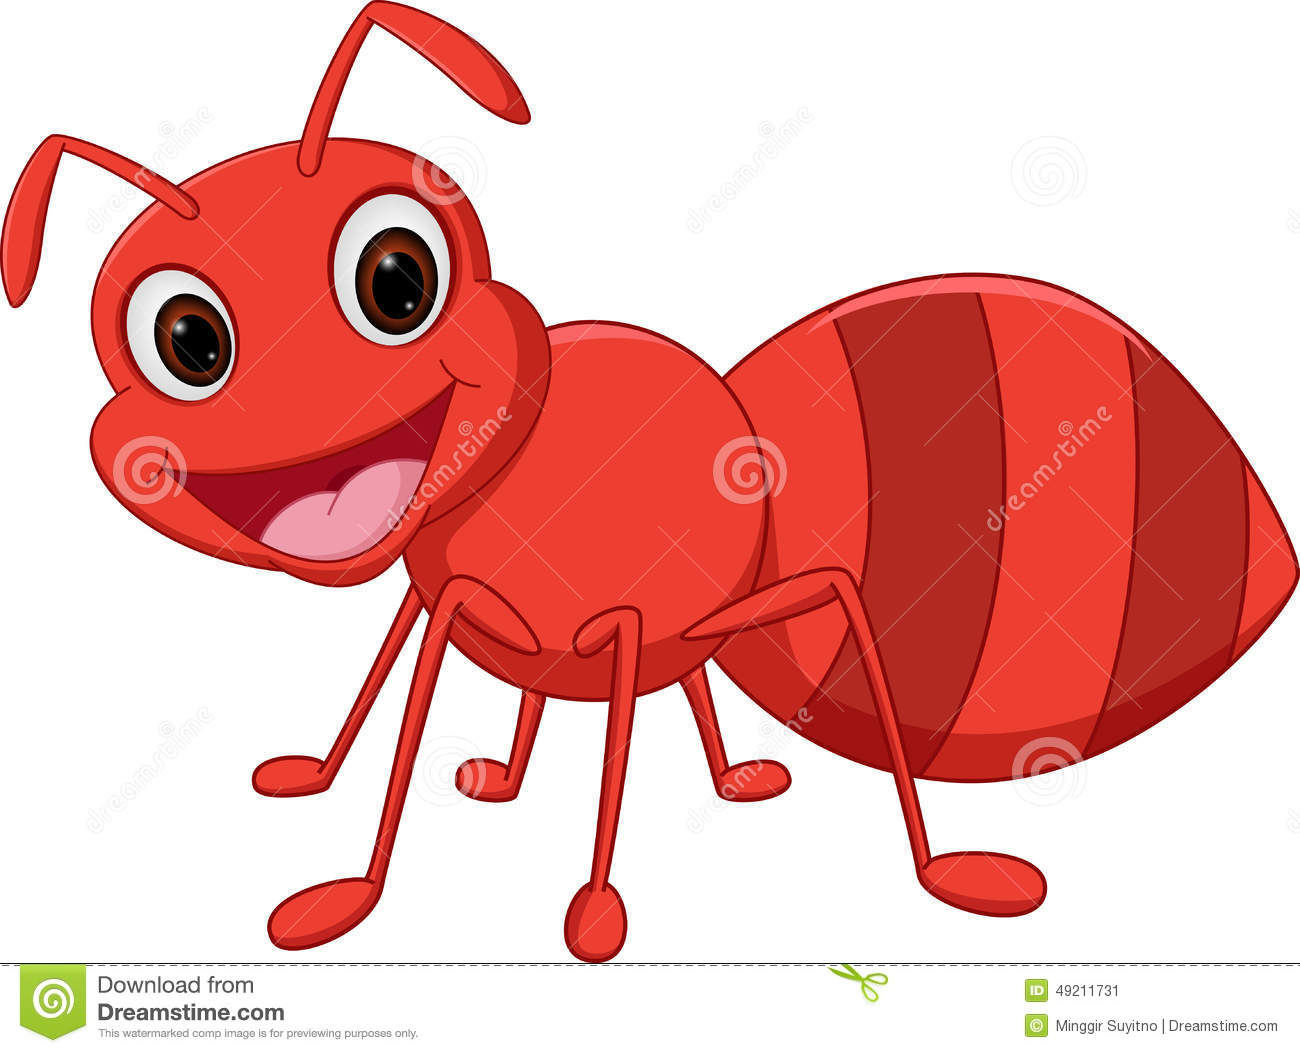 Illustration of Happy ant cartoon isolated on white.